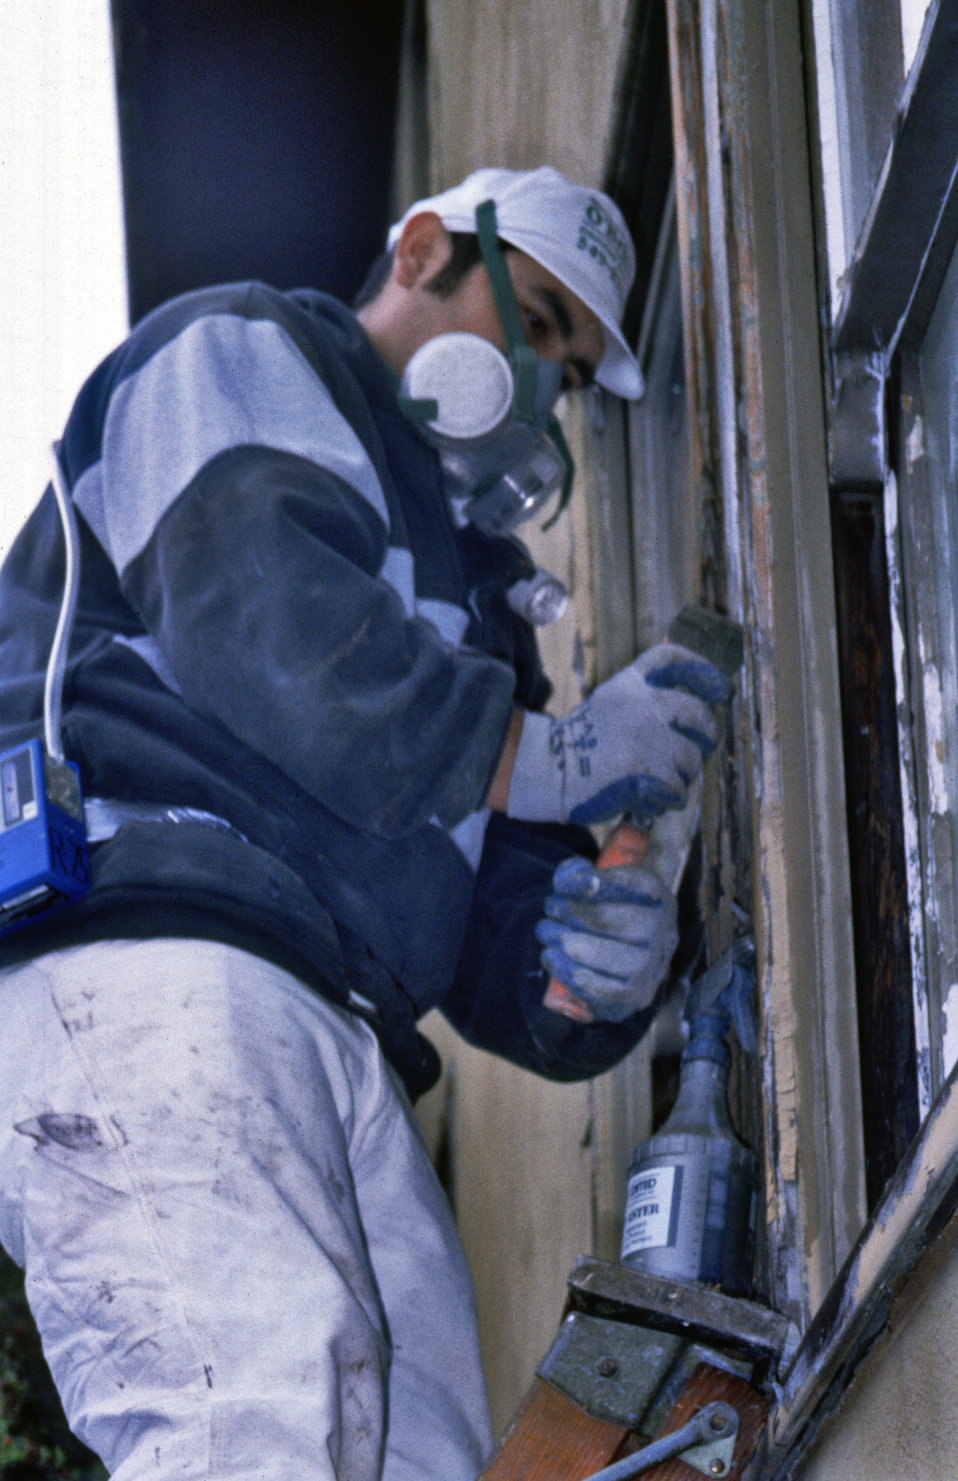 While wearing a protective mask, this worker was performing wet manual paint scraping in a 1999 exercise, demonstrating an exterior renovati